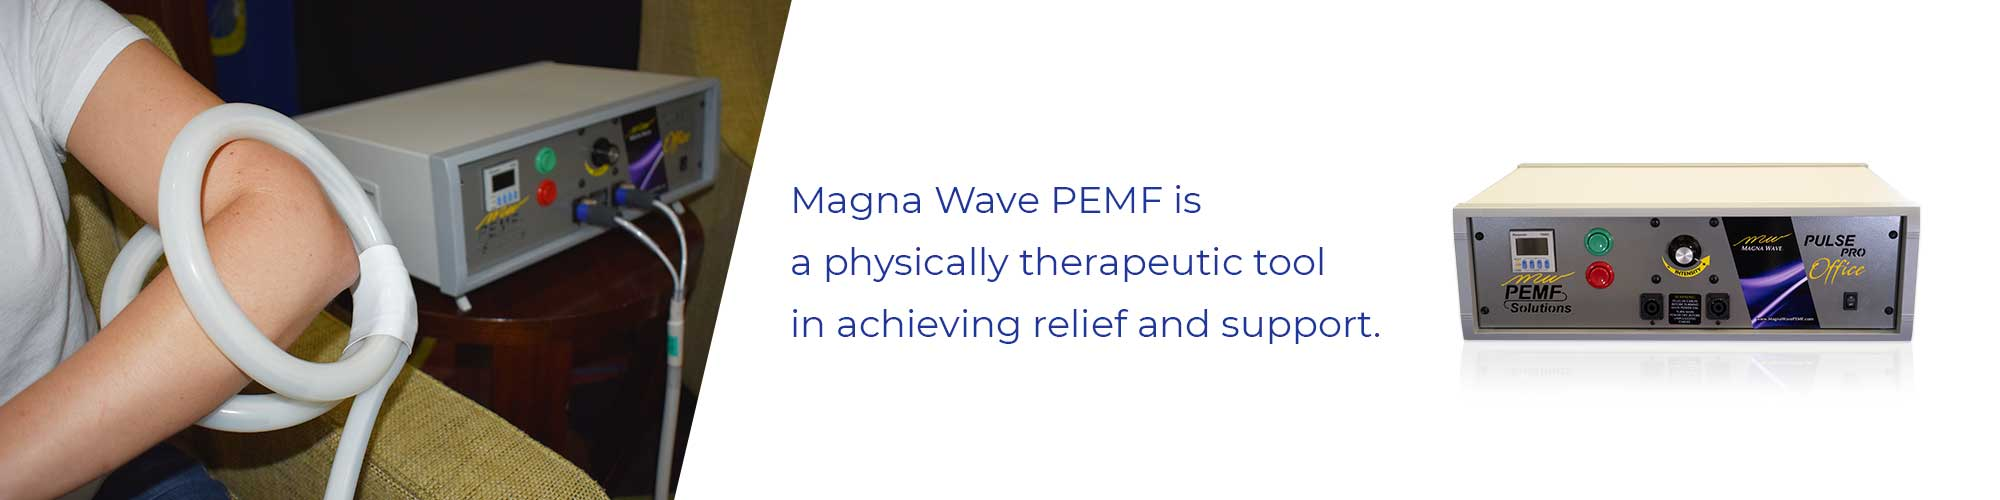 Magna Wave PEMF is a physically therapeutic tool in achieving relief and support.